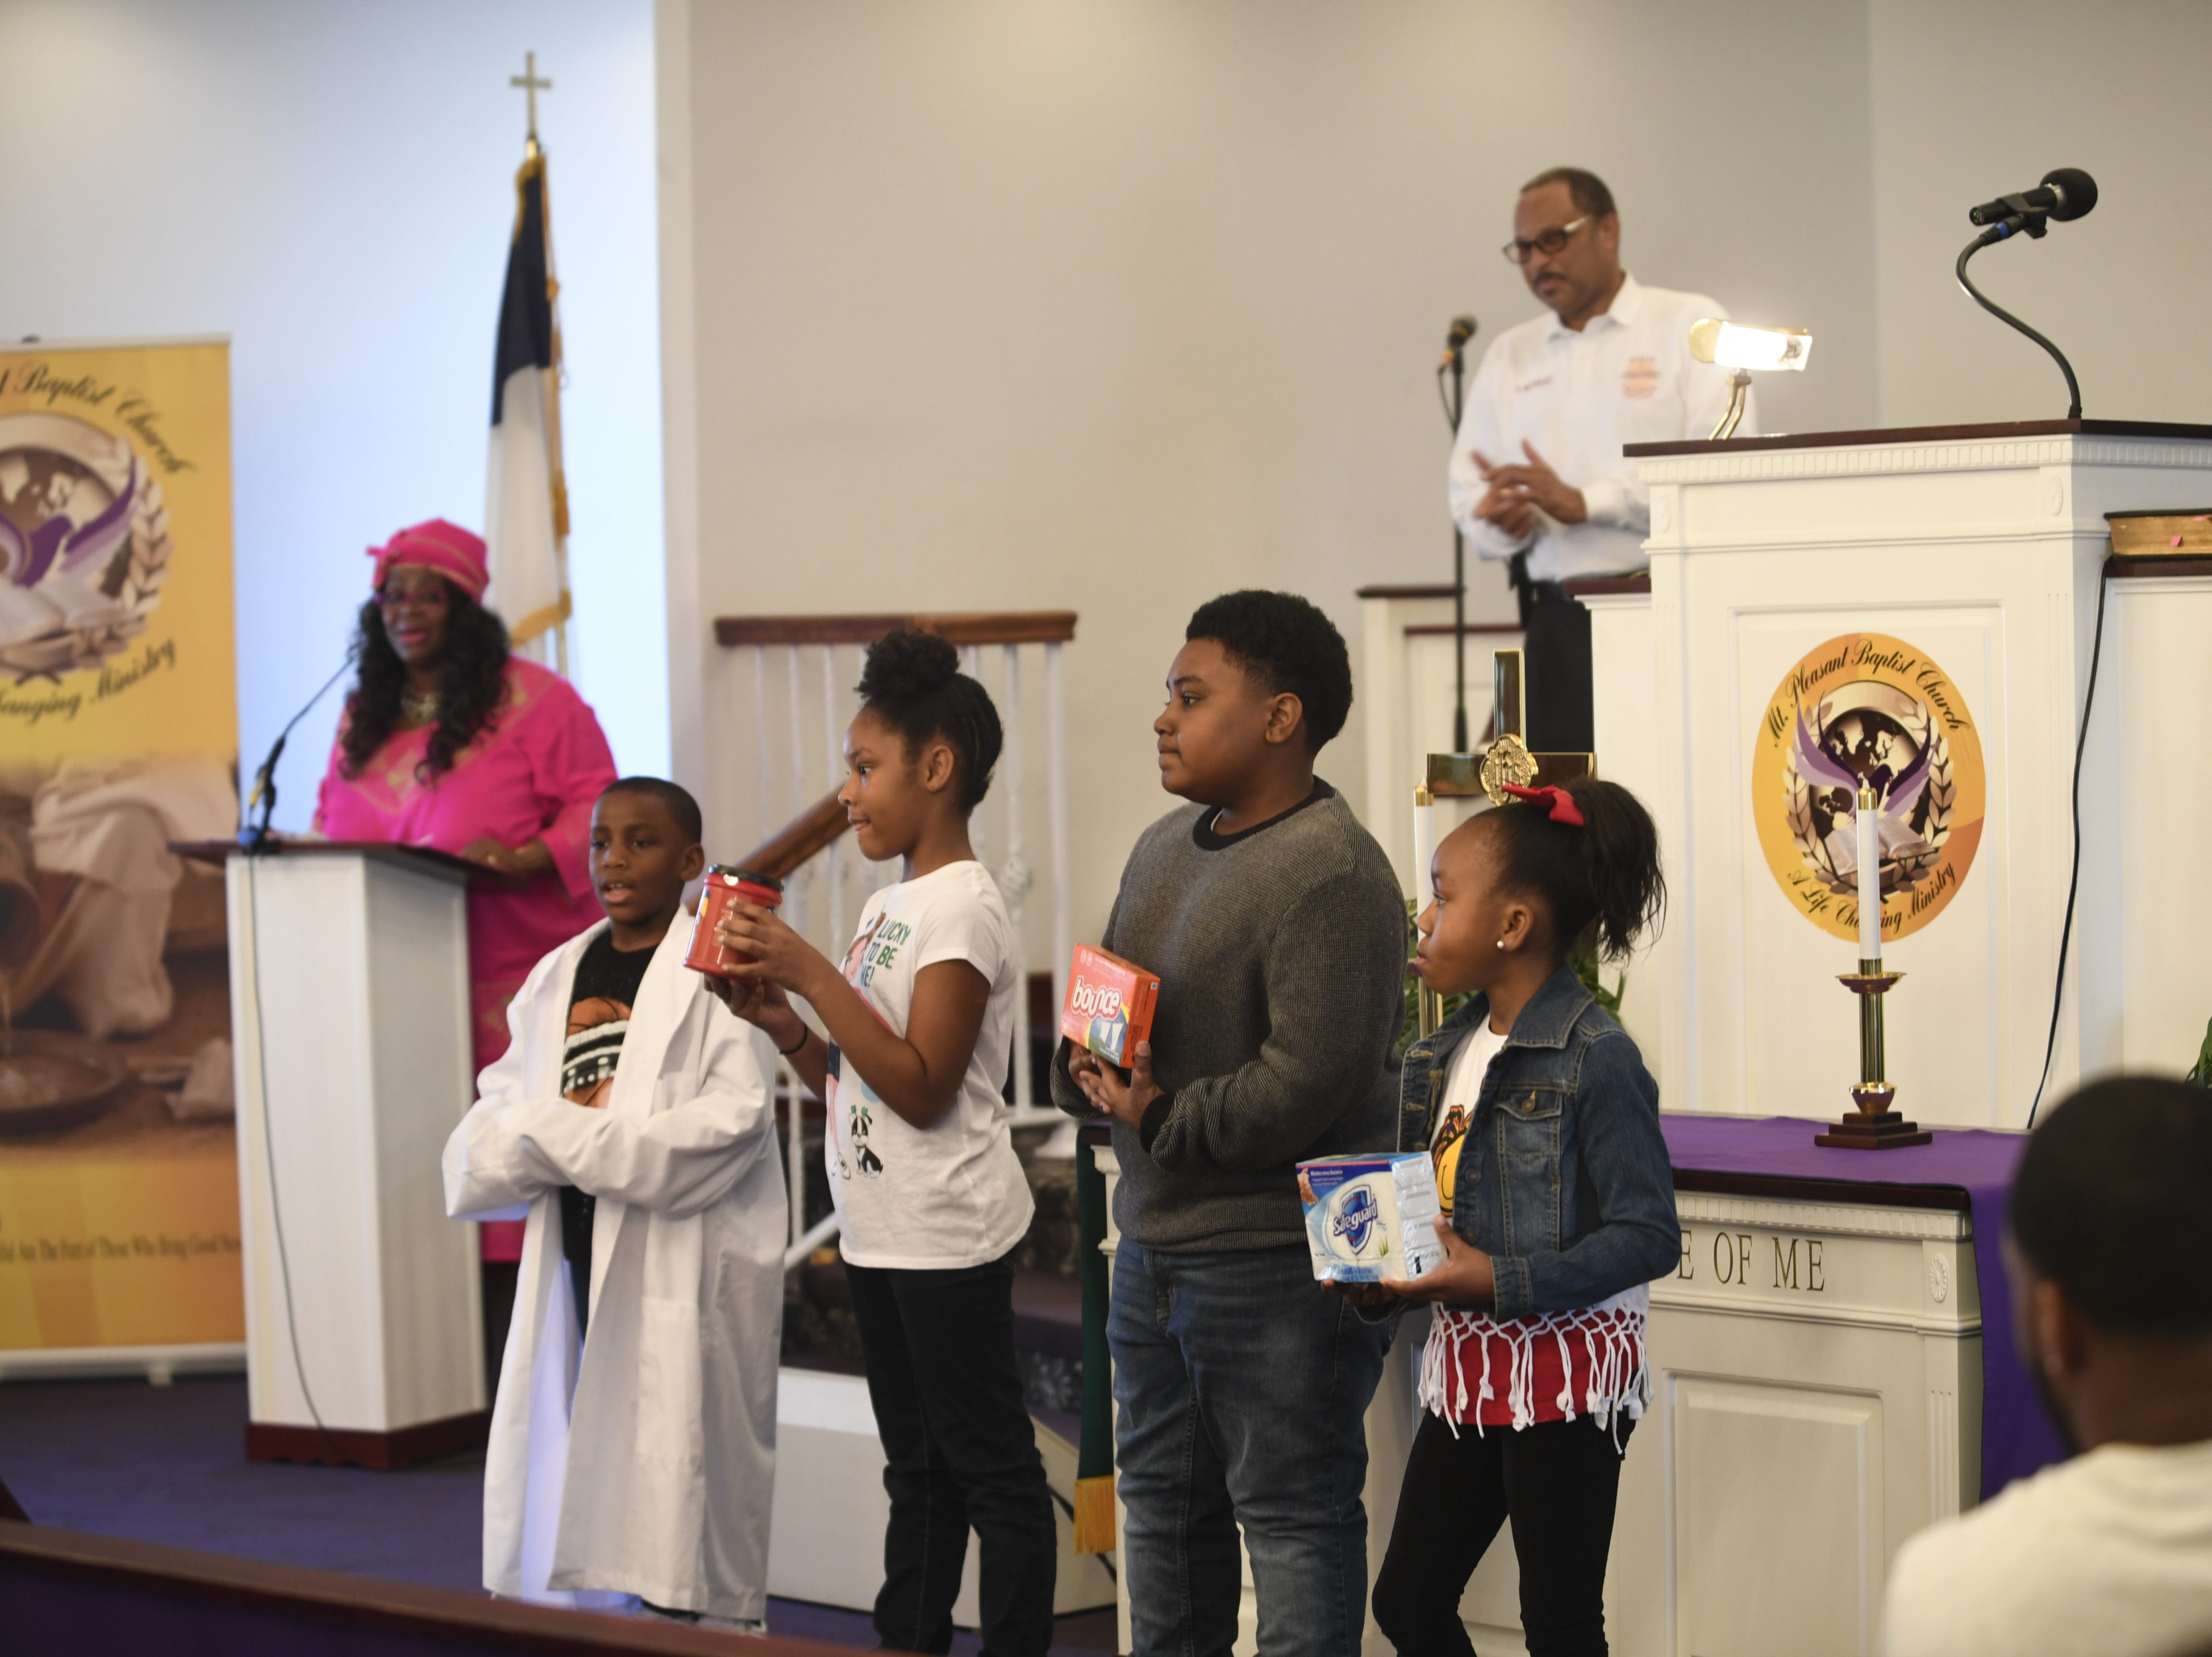 A group of kids from Mt. Pleasant Baptist Church show off some famous products created by African-Americans during a Black History Month event in Pinson, Tenn. Feb 24, 2019.